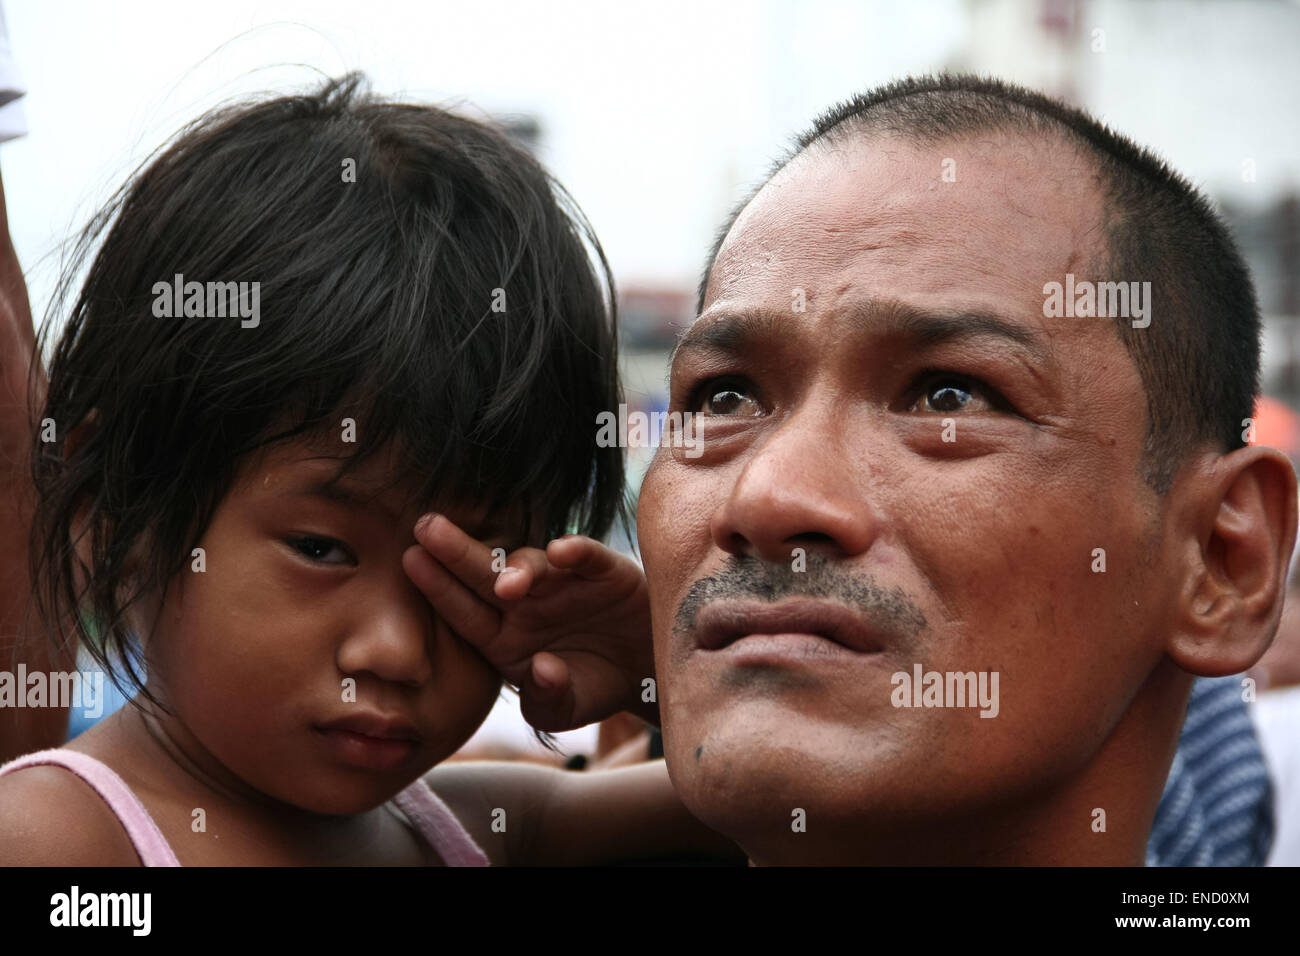 Manila, Philippines. 03rd May, 2015. A Manny Pacquiao fan and a young girl are teary eyed while watching the fight - Stock Image